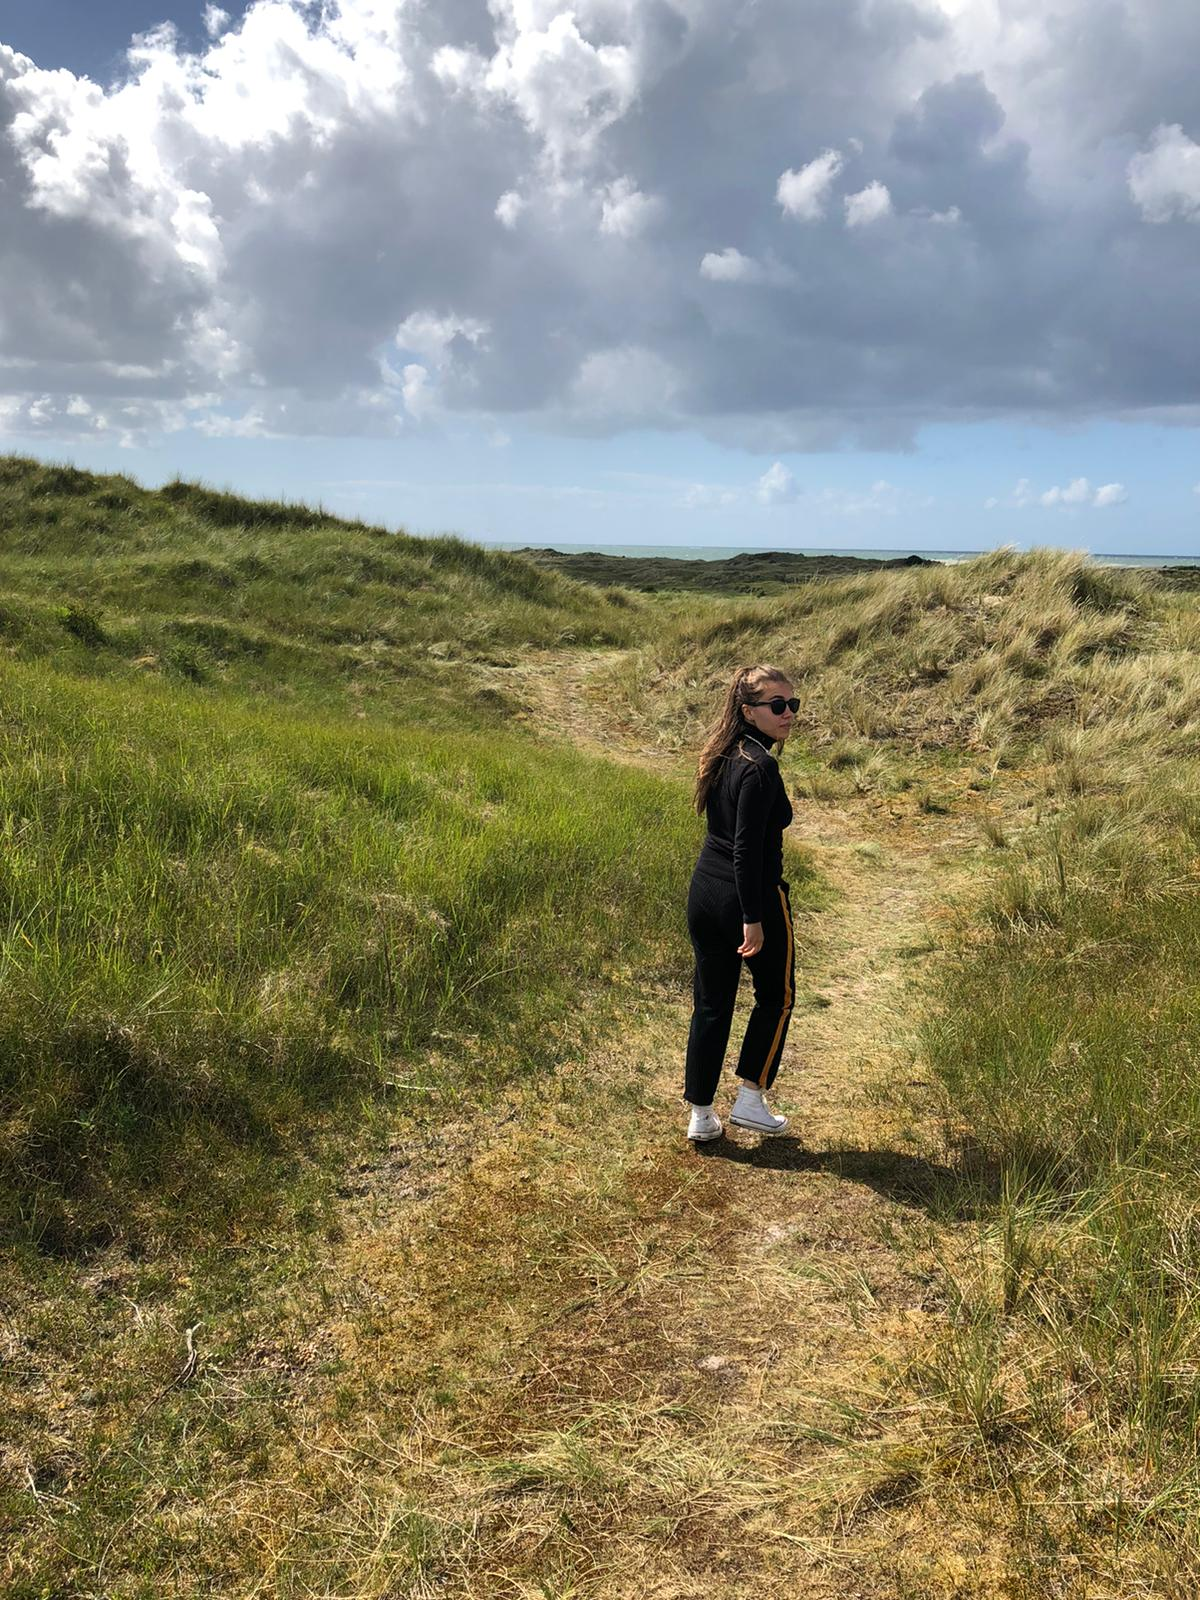 My packing list for Ameland 2020